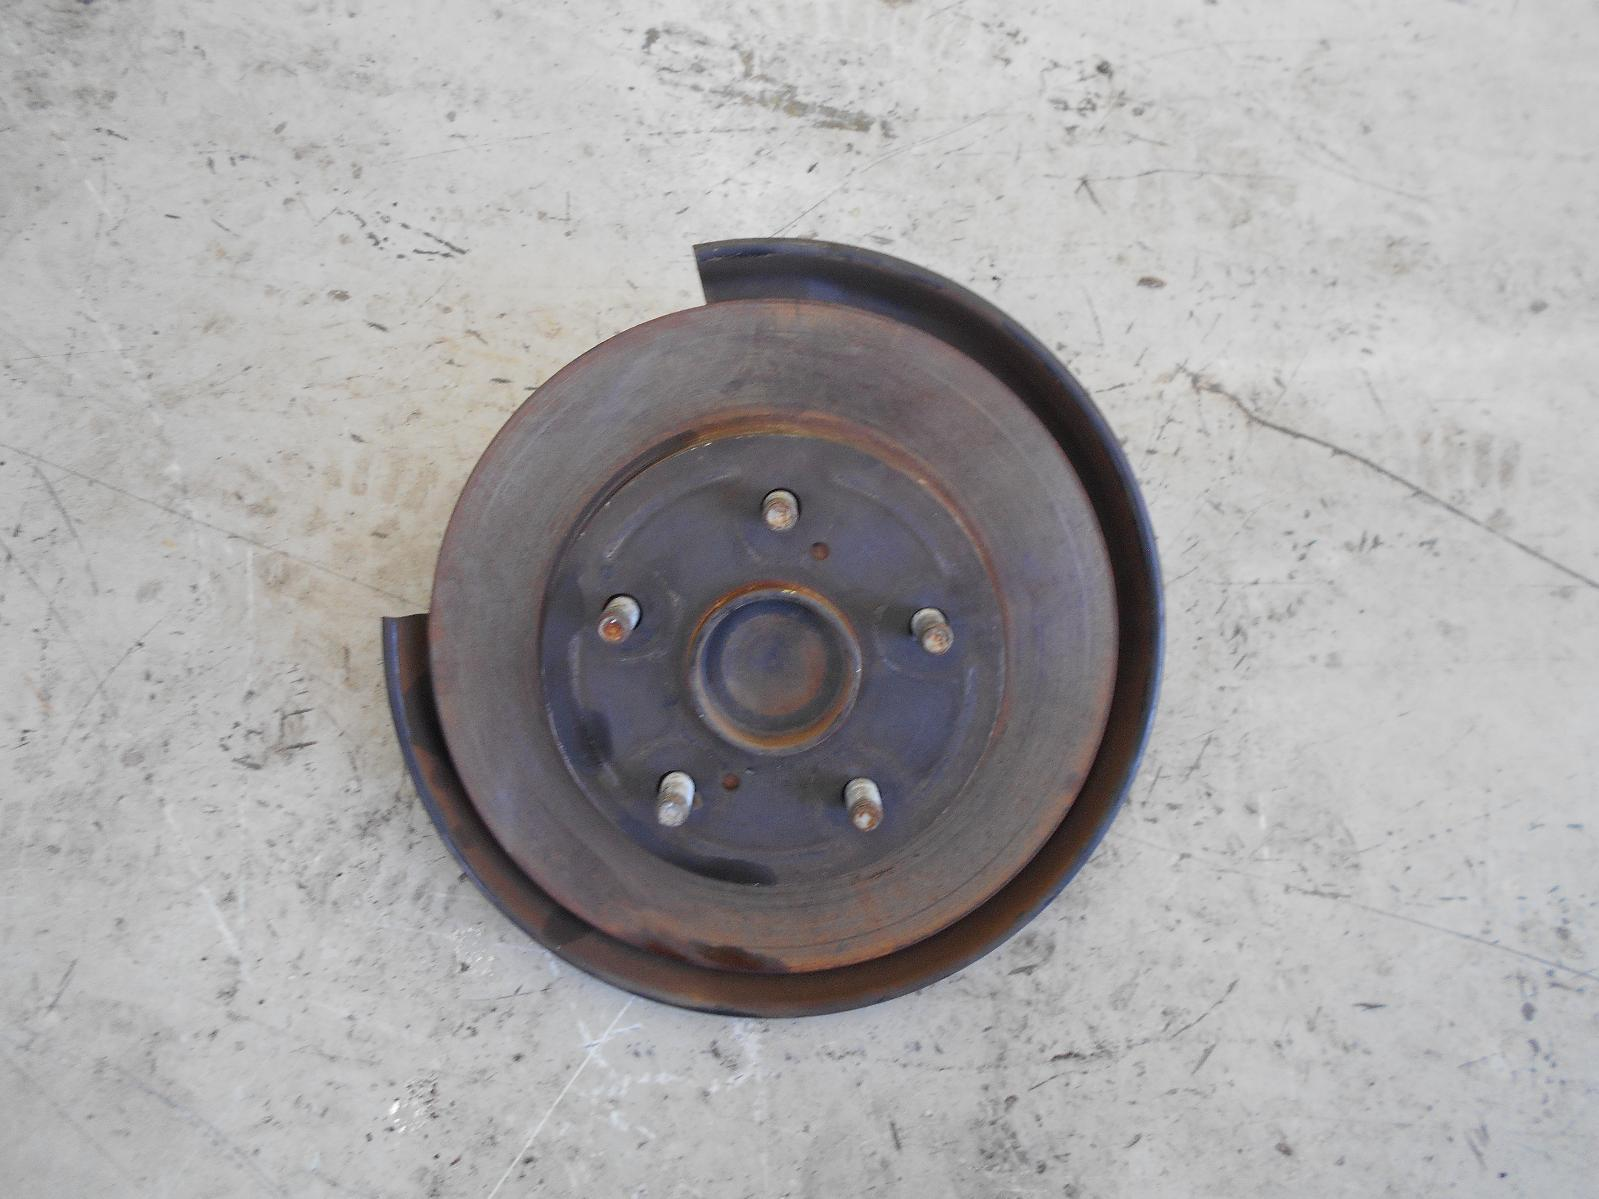 TOYOTA COROLLA, Right Rear Hub Assembly, ZRE152/153R, ABS TYPE, 03/07-10/13